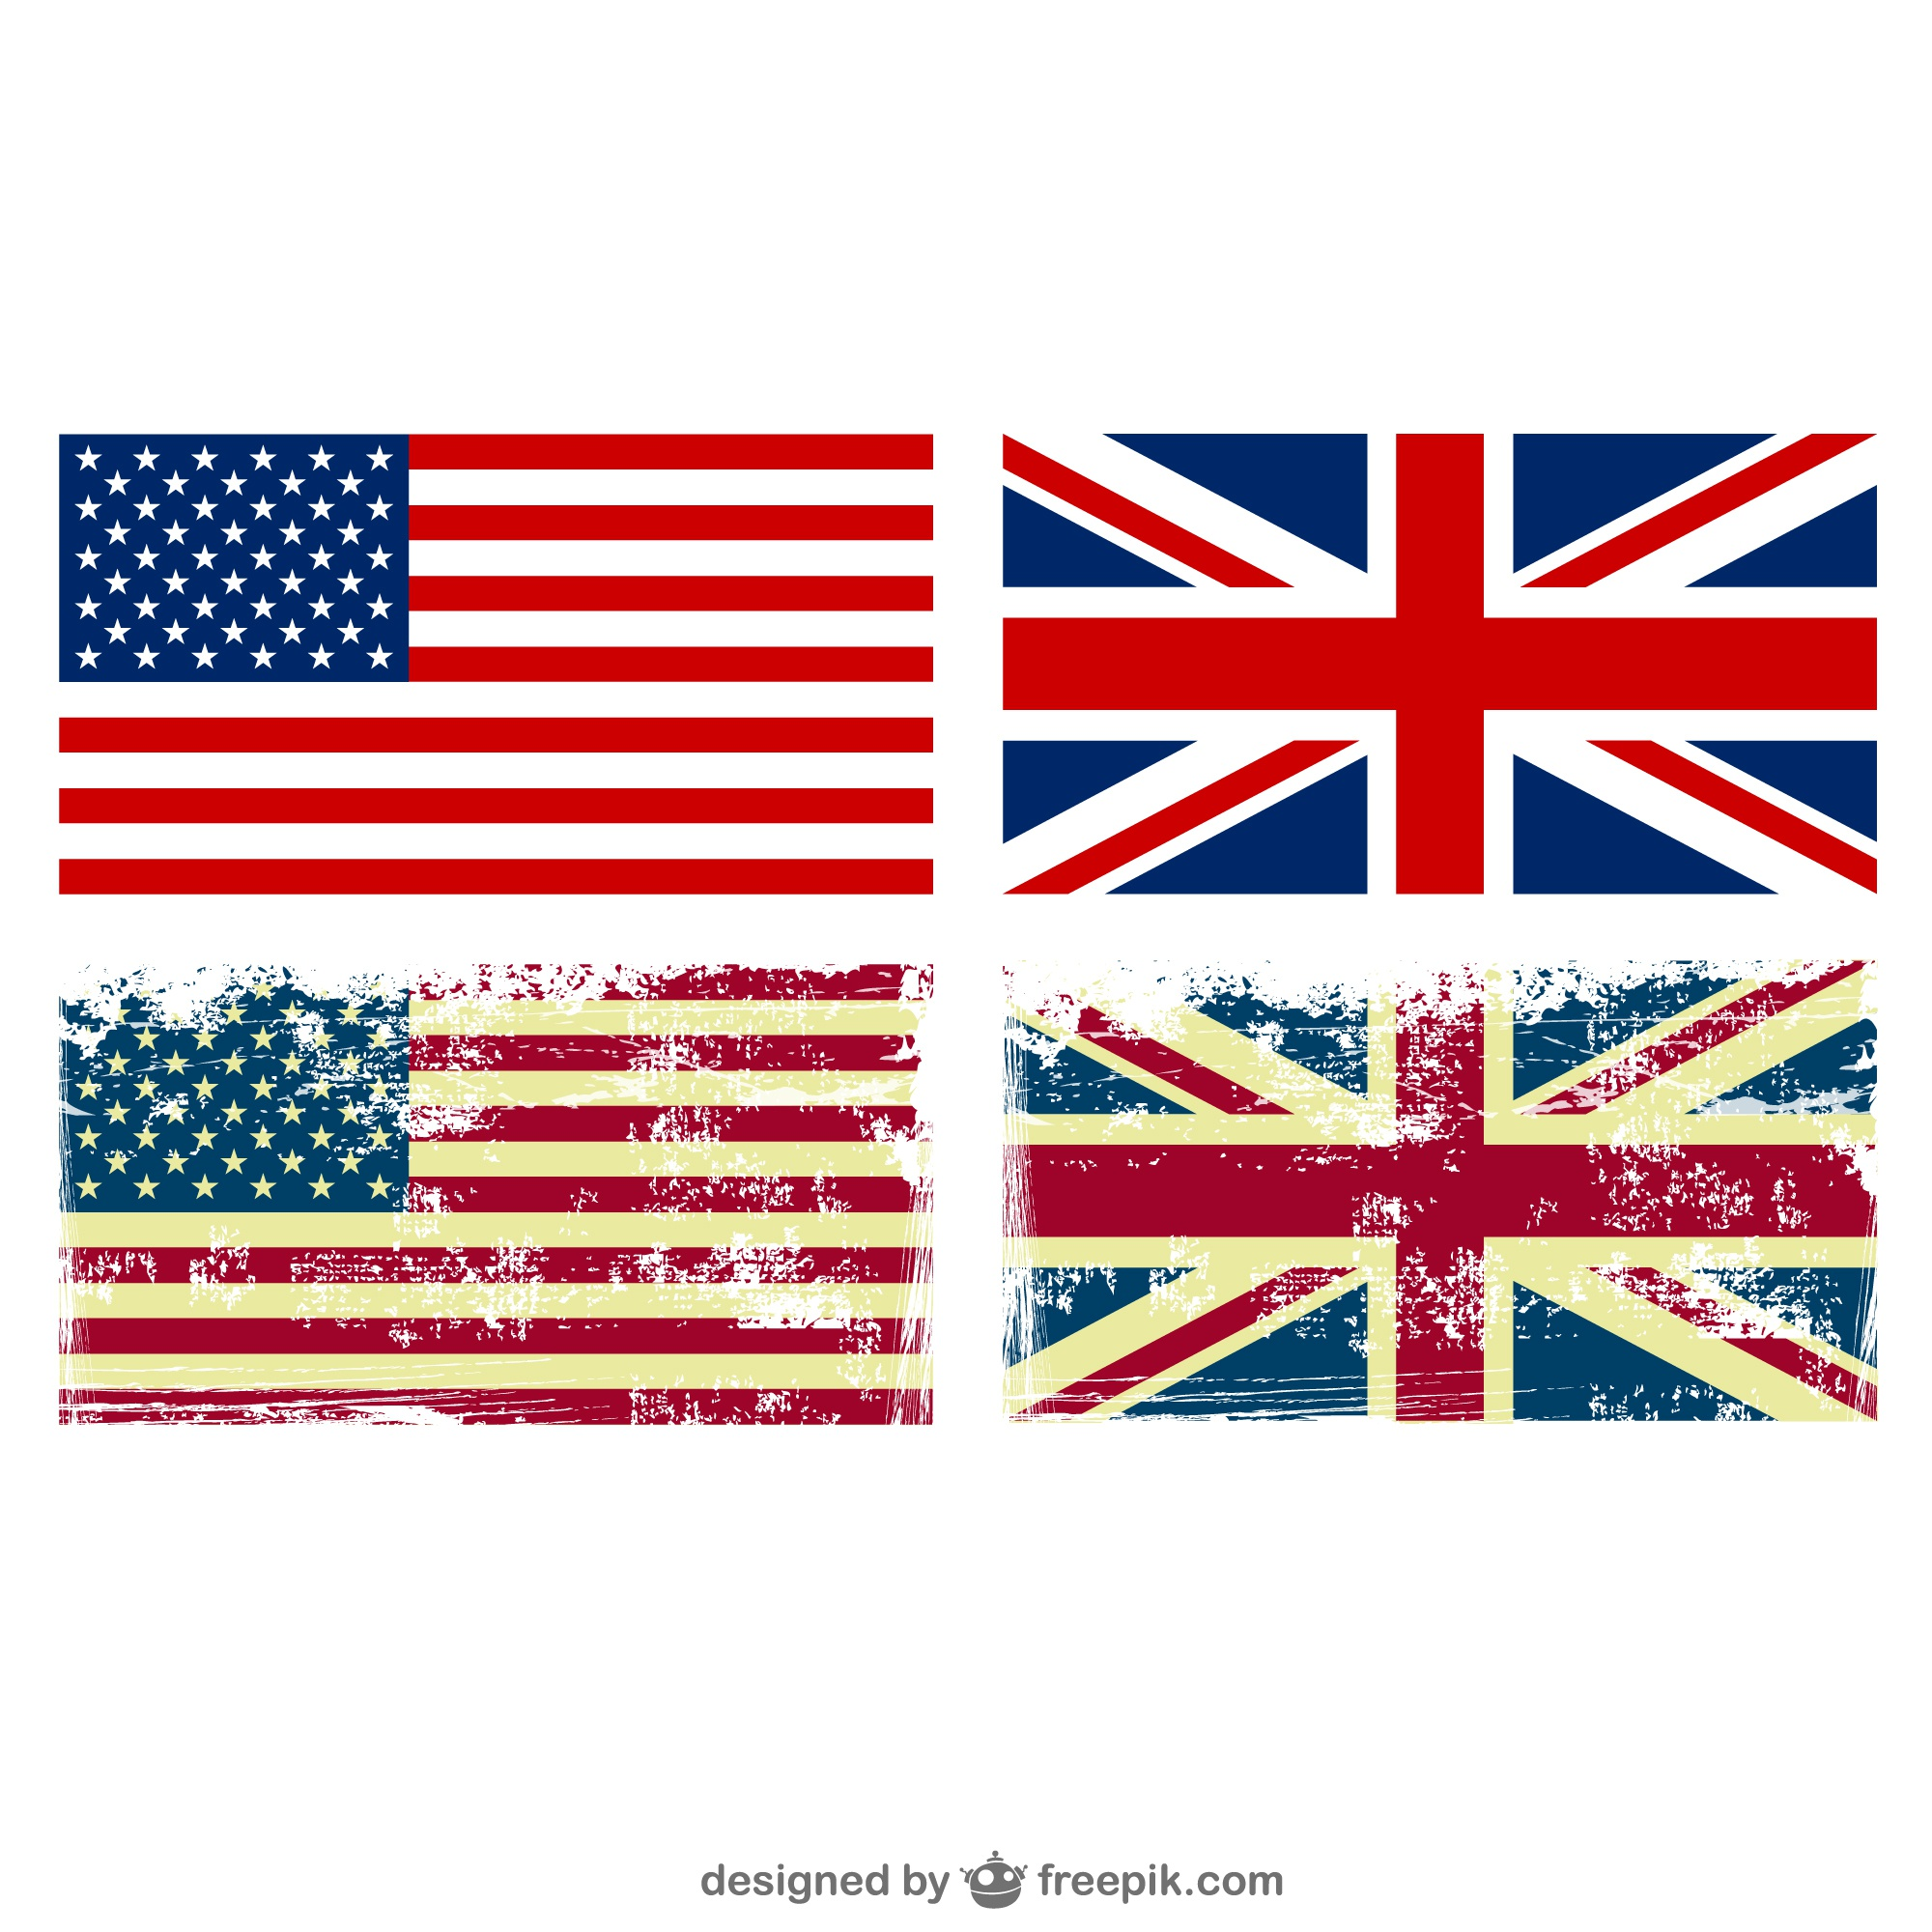 United States Great Birtain flags